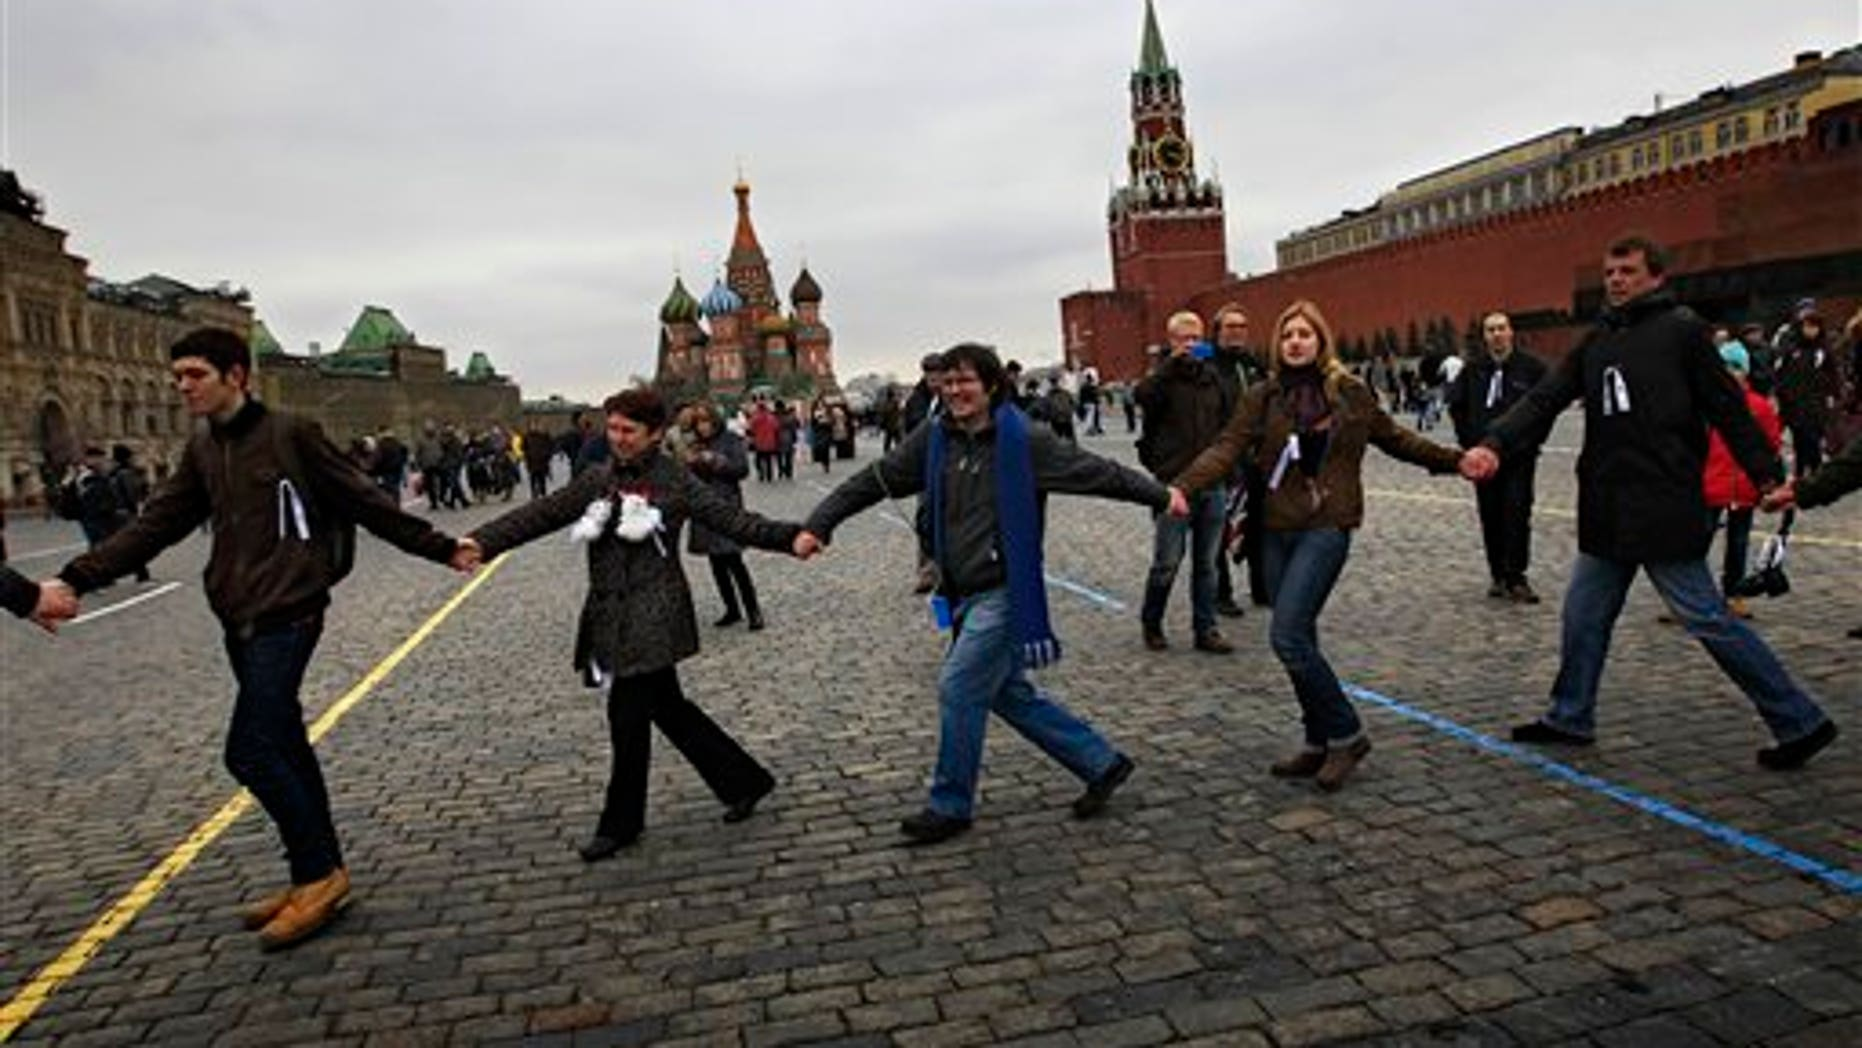 April 8, 2012: Opposition supporters wearing white ribbons walk in a circle hand to hand during a protest at the Red Square in Moscow. Opposition activists called for supporters to walk around Red Square on Sunday wearing the white ribbons that have become a symbol of the protest movement against Prime Minister Vladimir Putin.